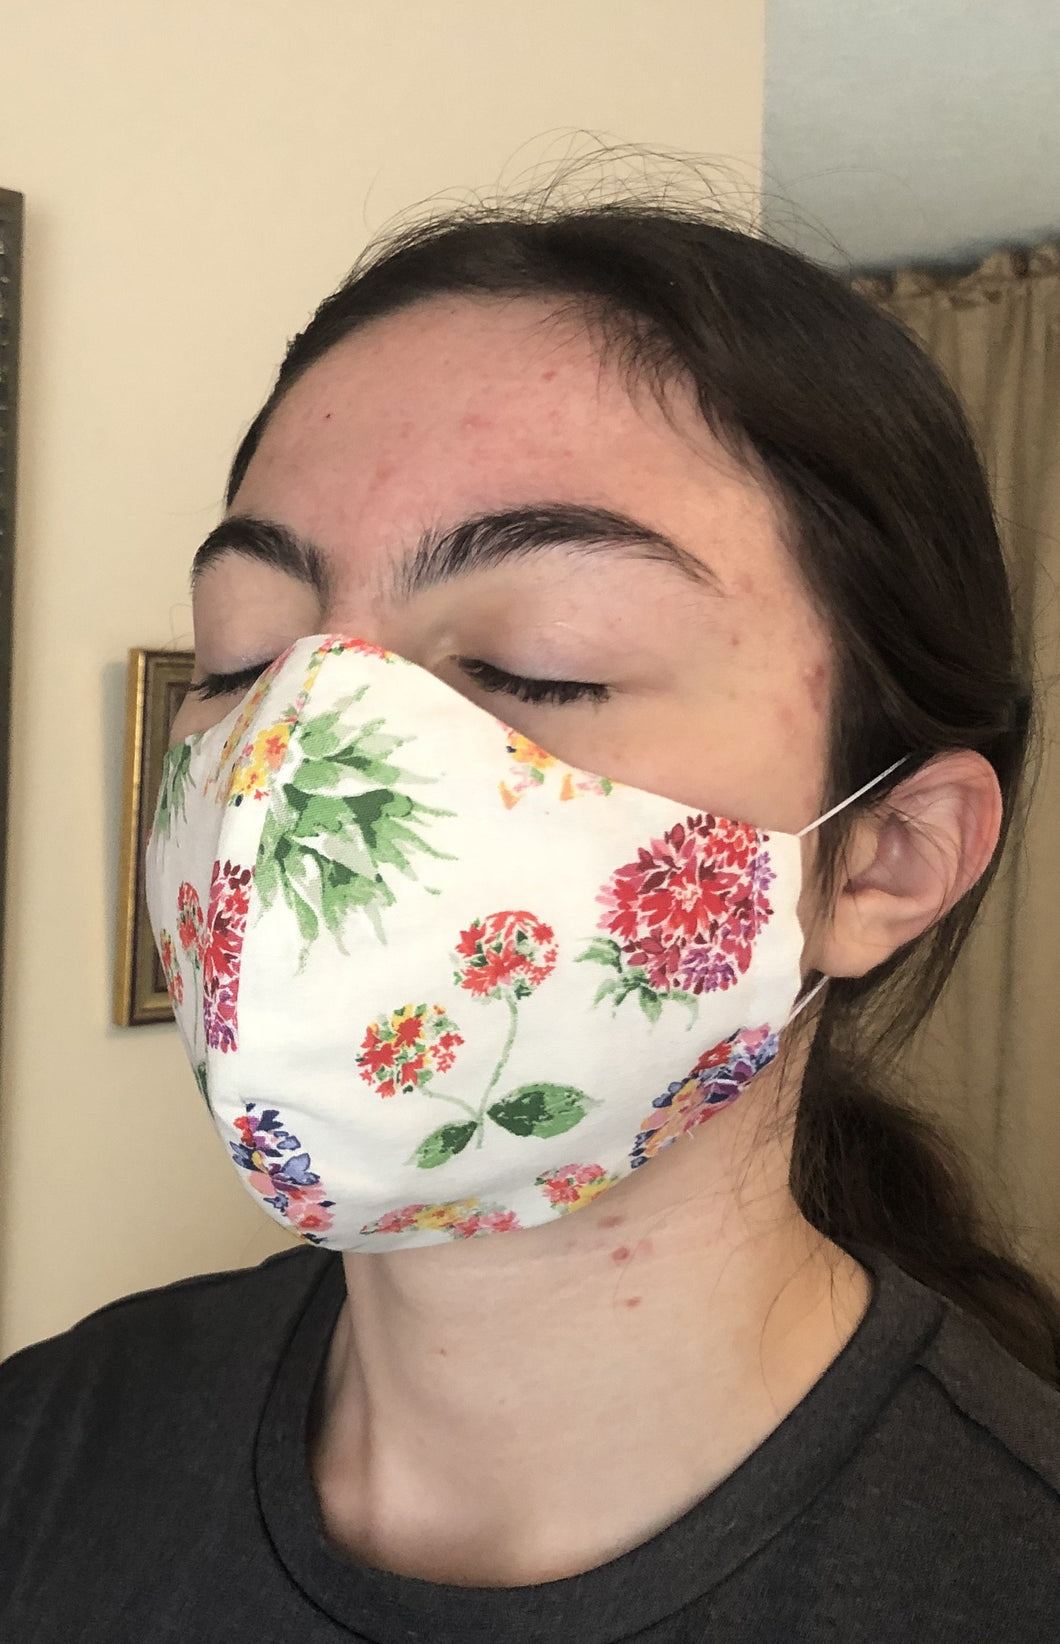 024 Sweet Flowers Handmade Protective Fashion Face Mask- 100% Sterilized- includes replacable filter